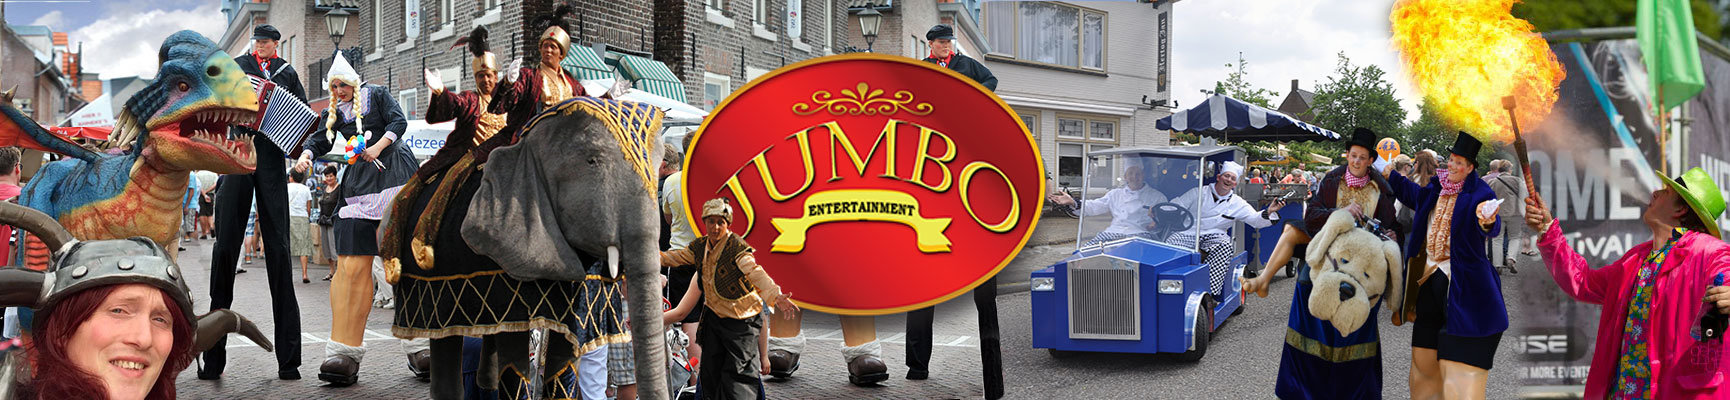 Jumbo-entertainment-header